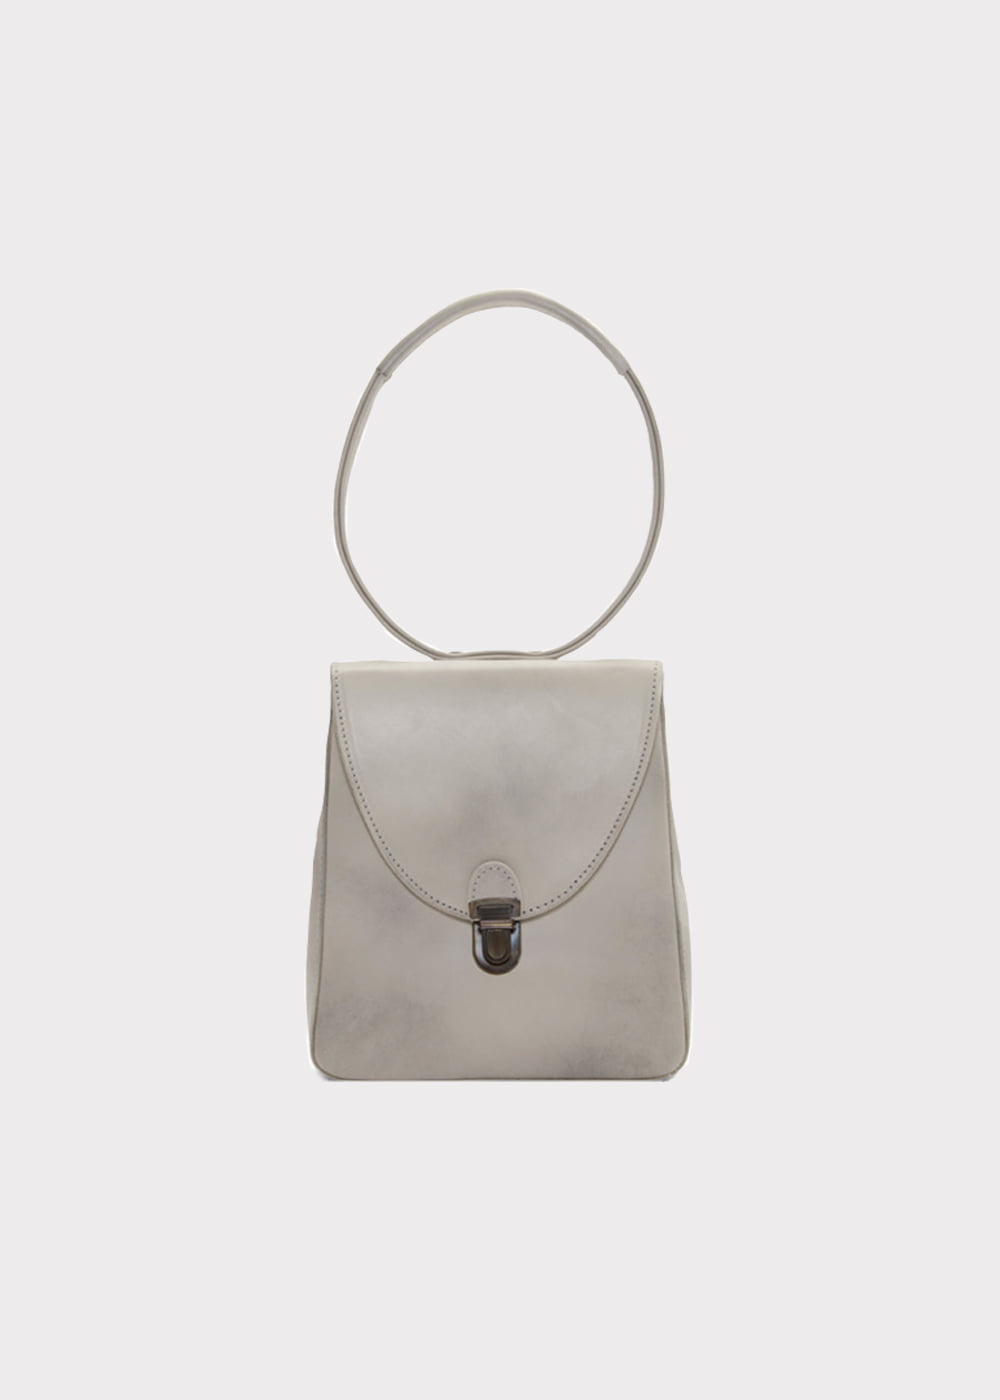 MINI RECTANGULAR LOCK BAG WITH SMALL HANDLE - dirty white